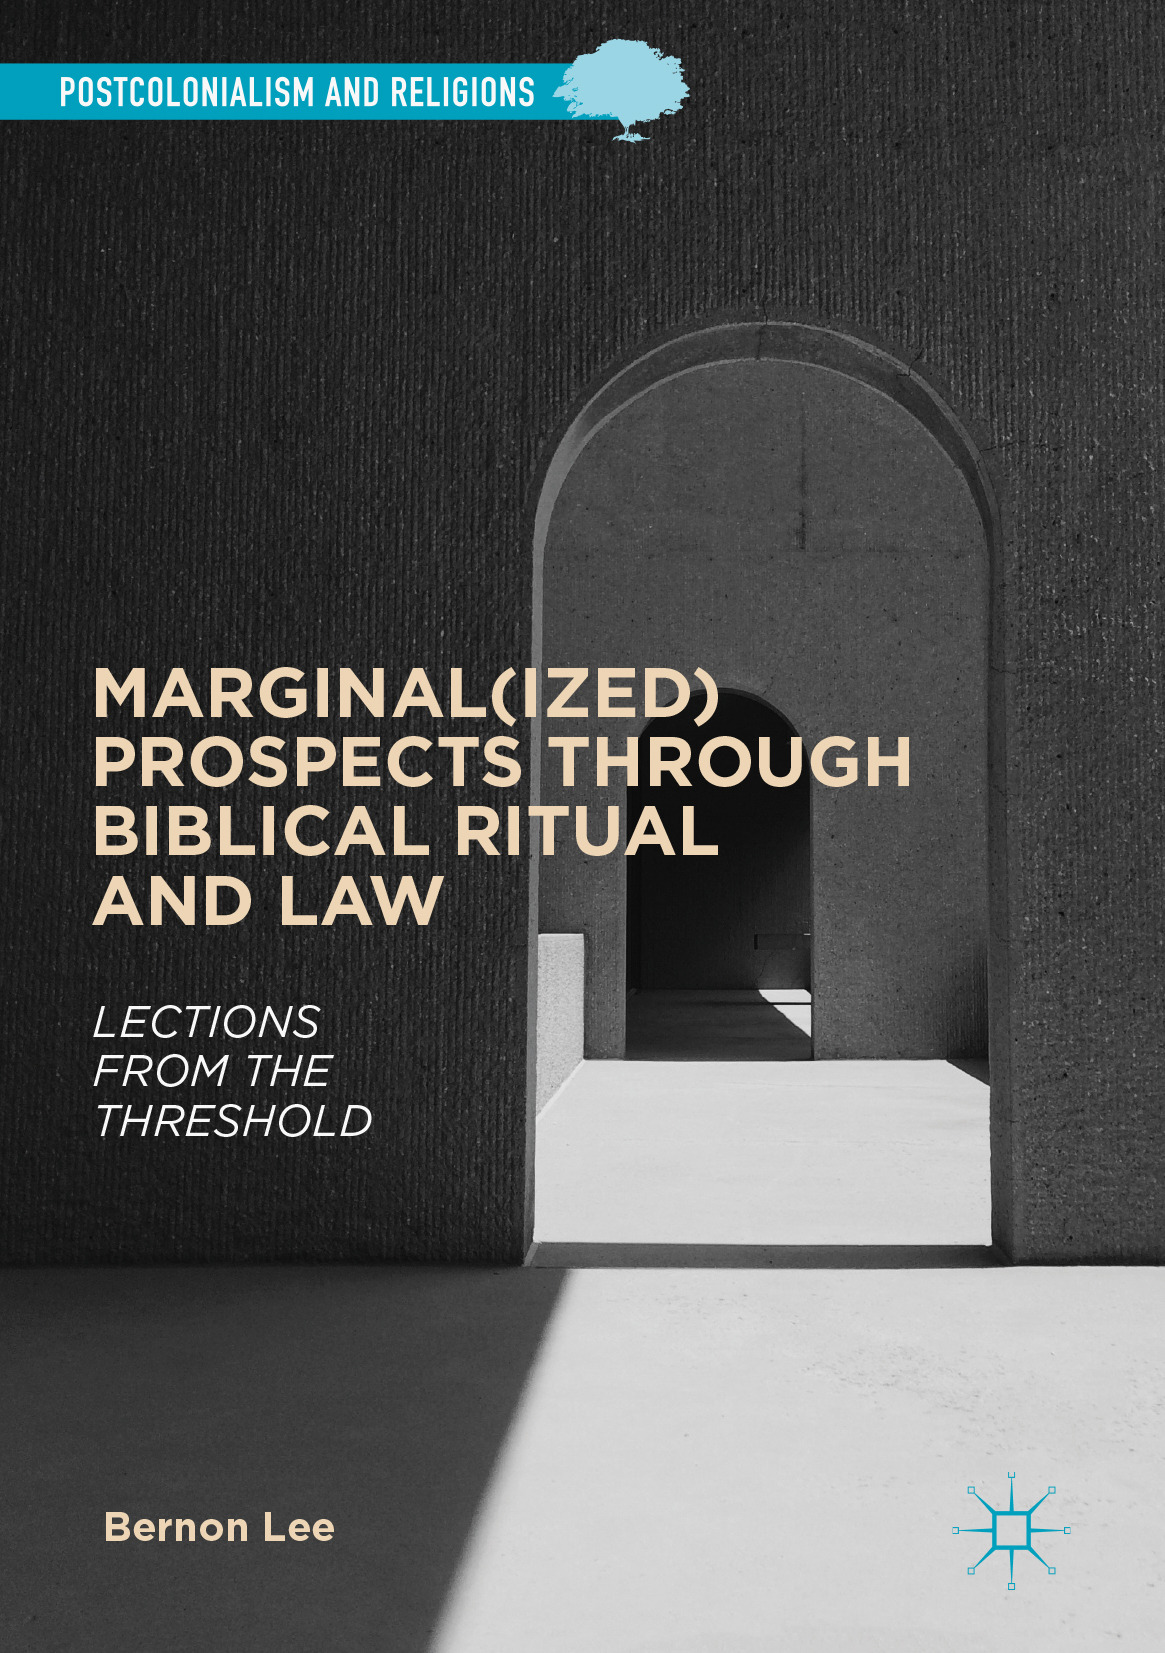 Lee, Bernon - Marginal(ized) Prospects through Biblical Ritual and Law, ebook